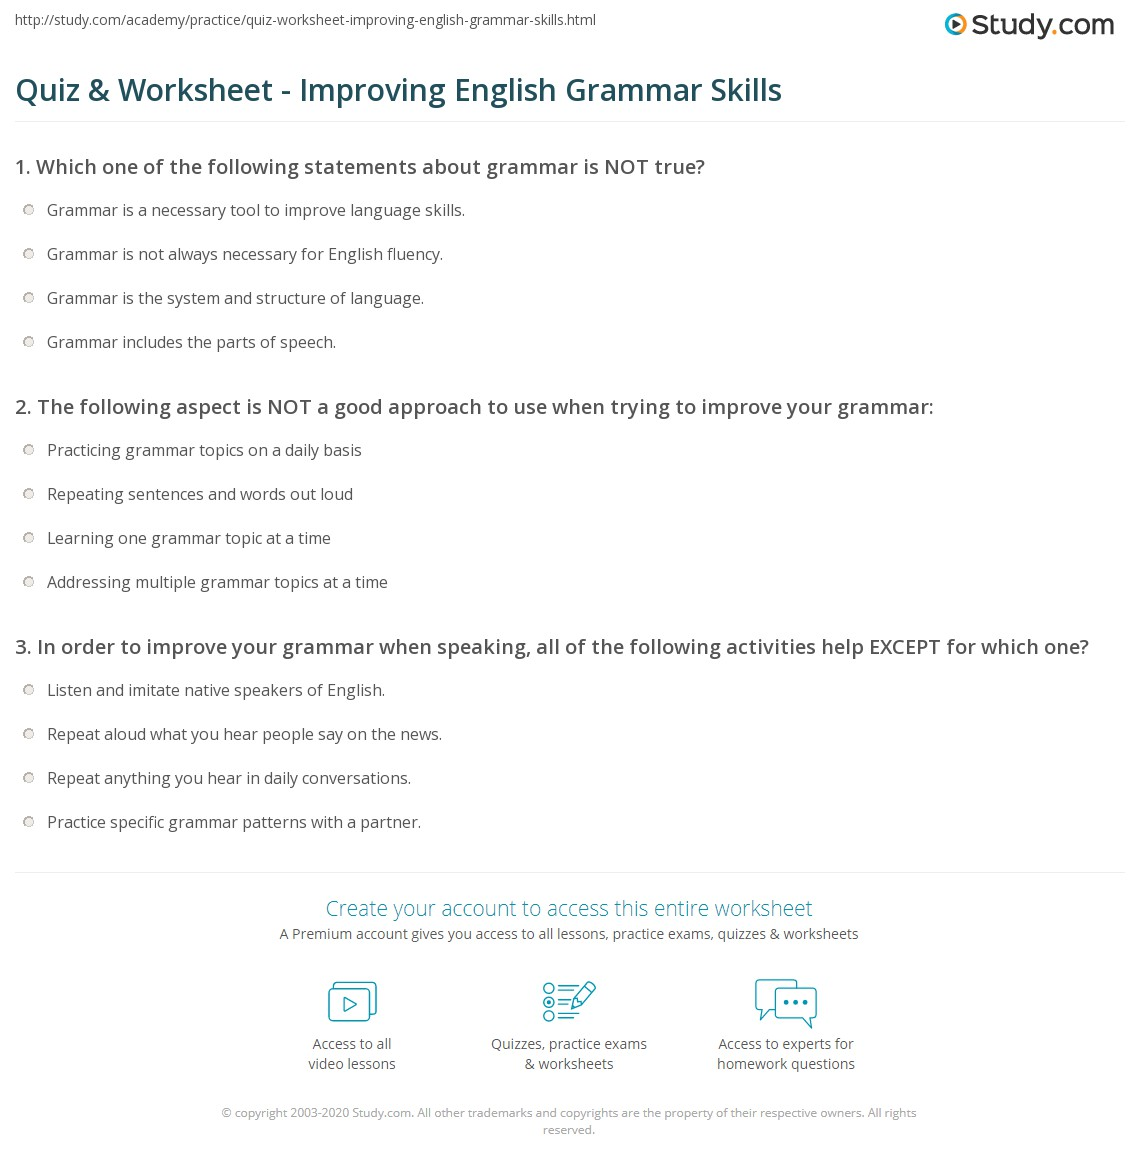 Quiz & Worksheet Improving English Grammar Skills